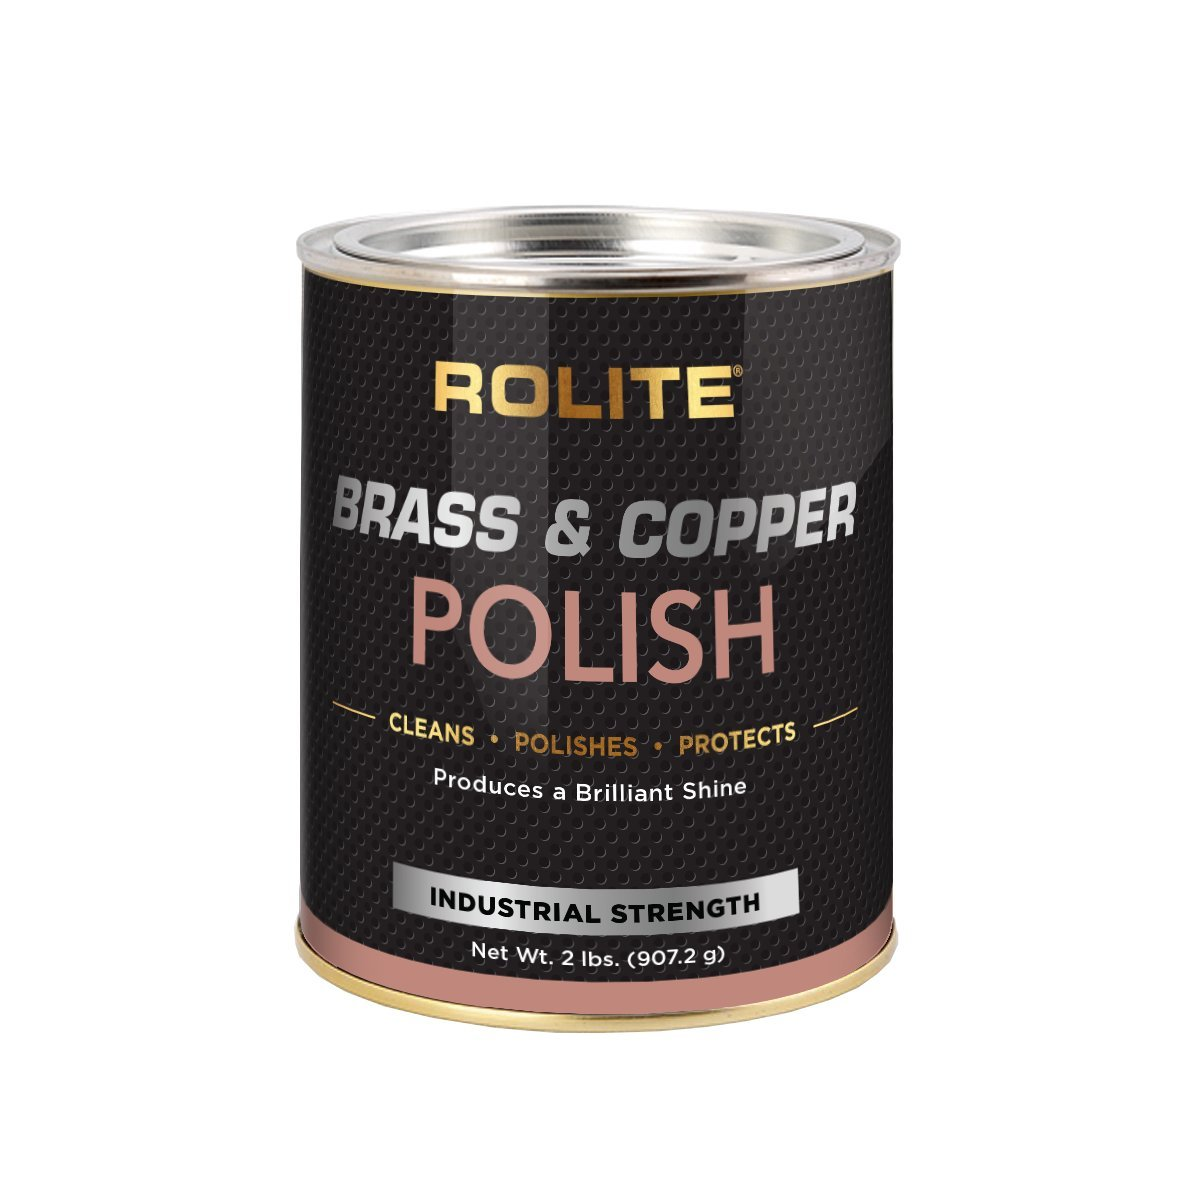 Rolite Brass & Copper Polish (2lb) Instant Polishing & Tarnish Removal on Railings, Elevators, Fixtures, Hotels, Cruise Ships, Office Buildings